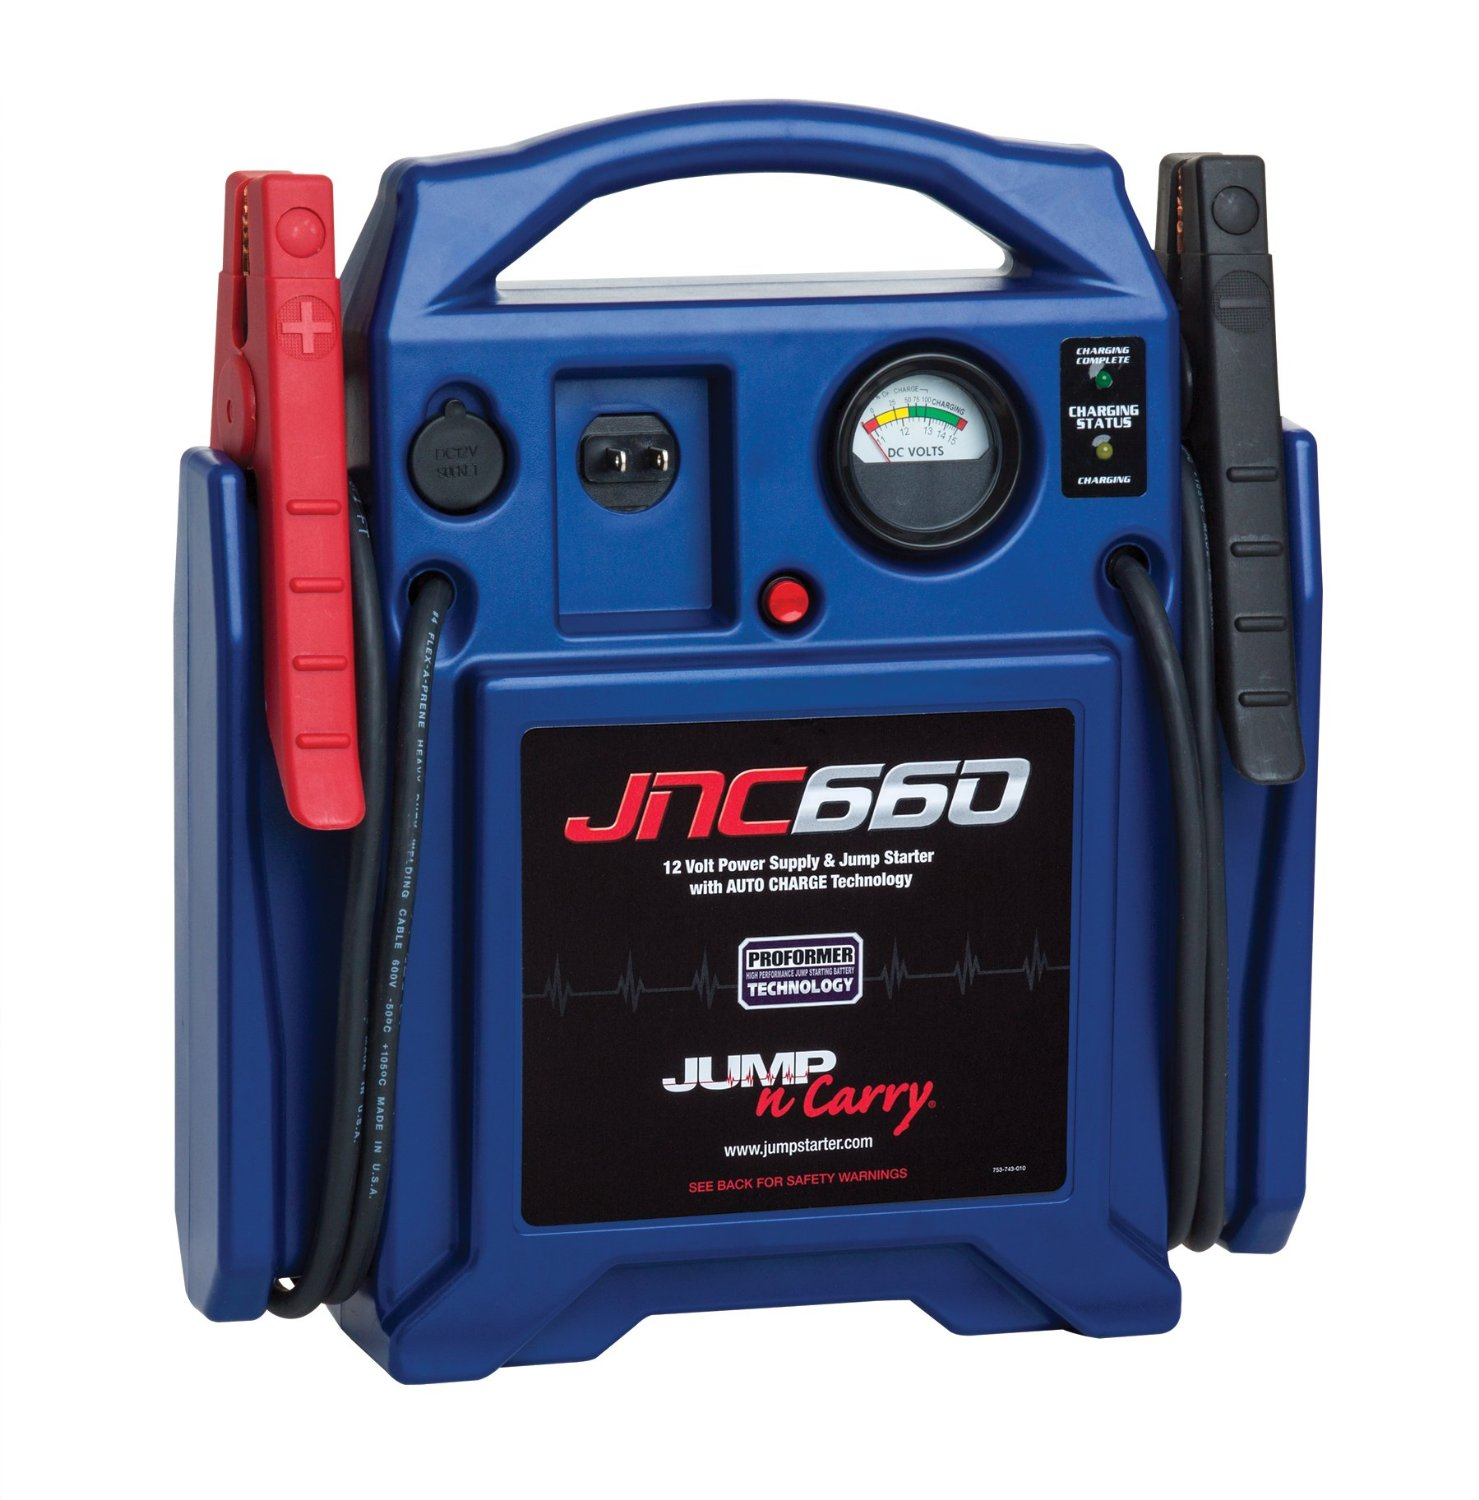 Top 10 Best Portable Jump Starters of 2017